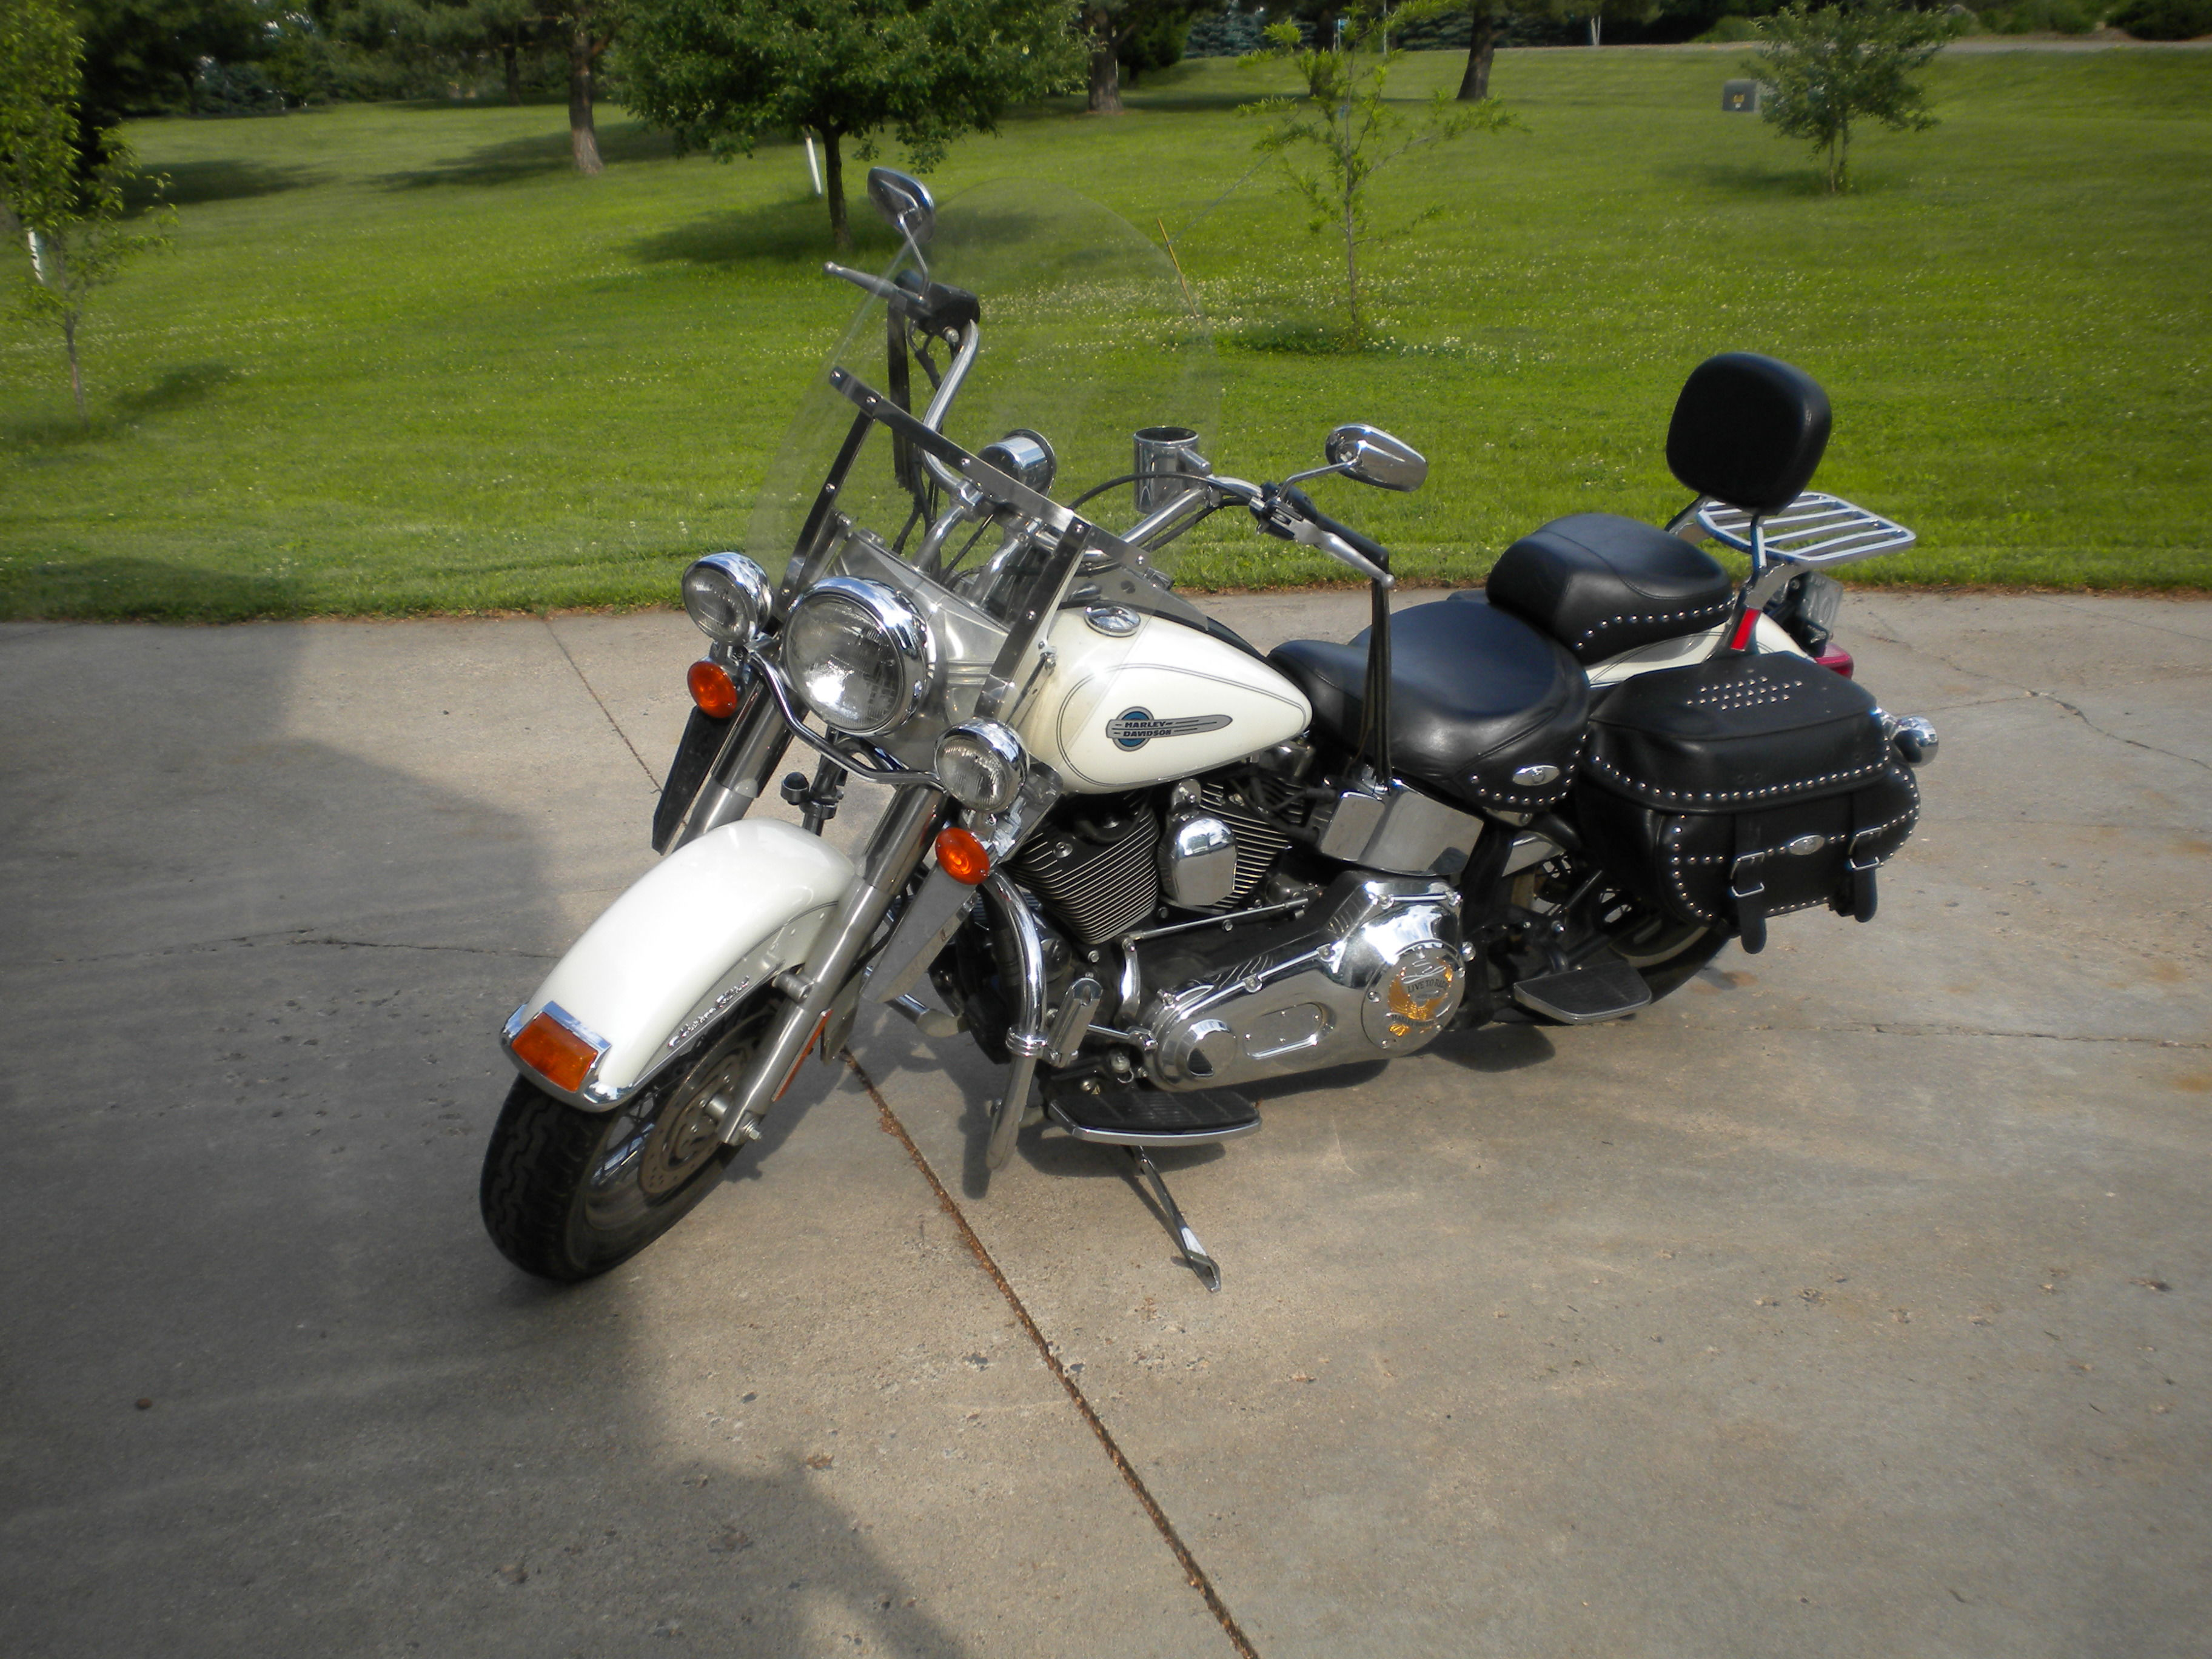 2004 Harley Davidson Heritage Softail Classic   Motorcycles